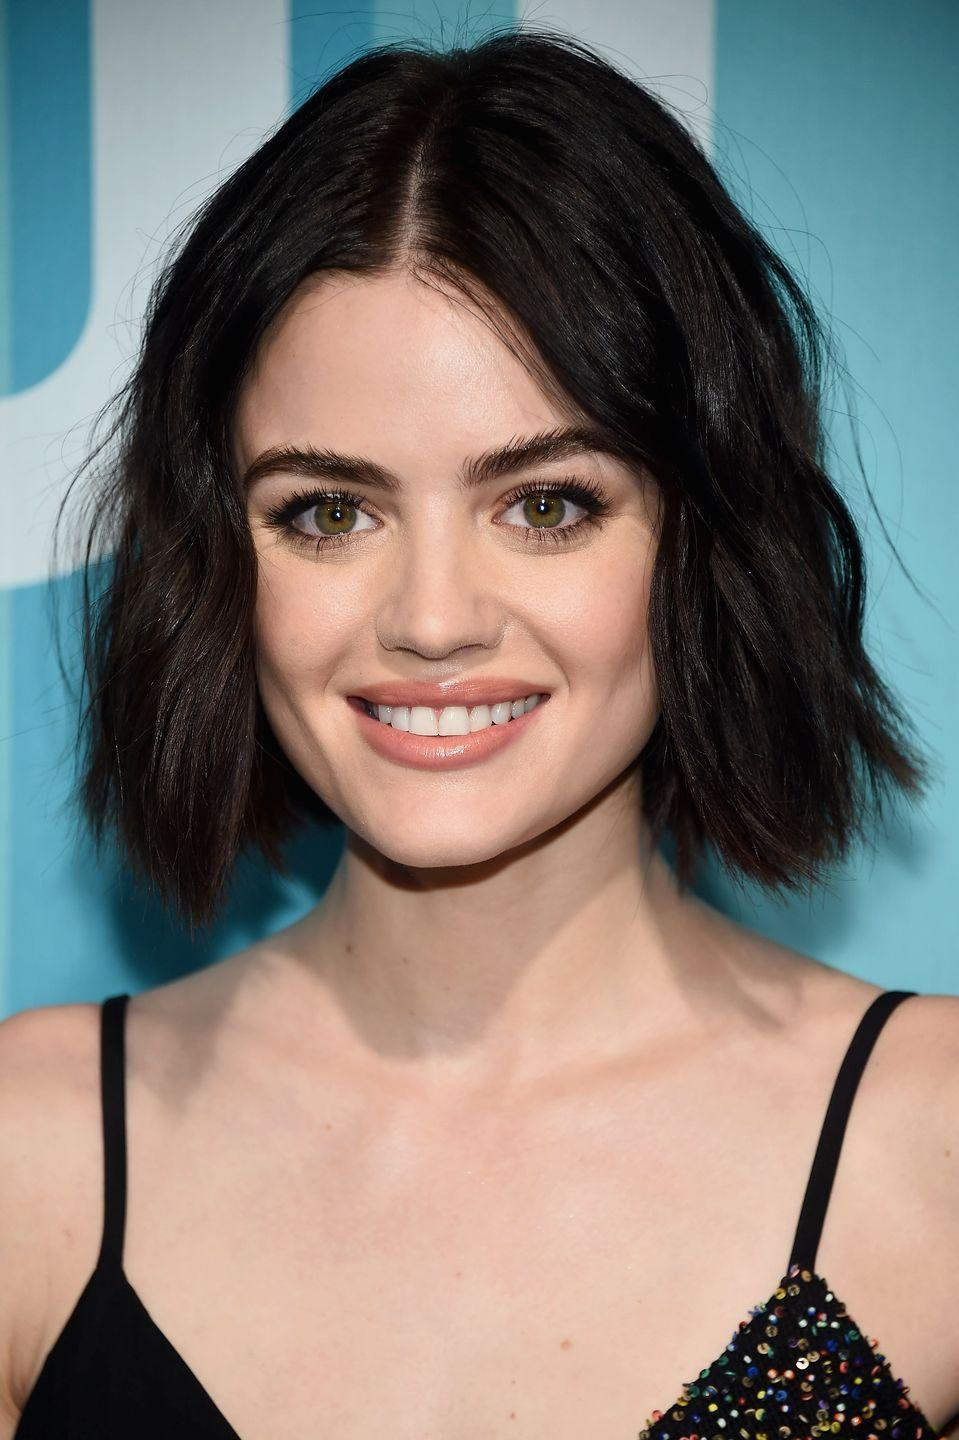 <p><strong>Real name: </strong>Karen Lucille Hale</p>